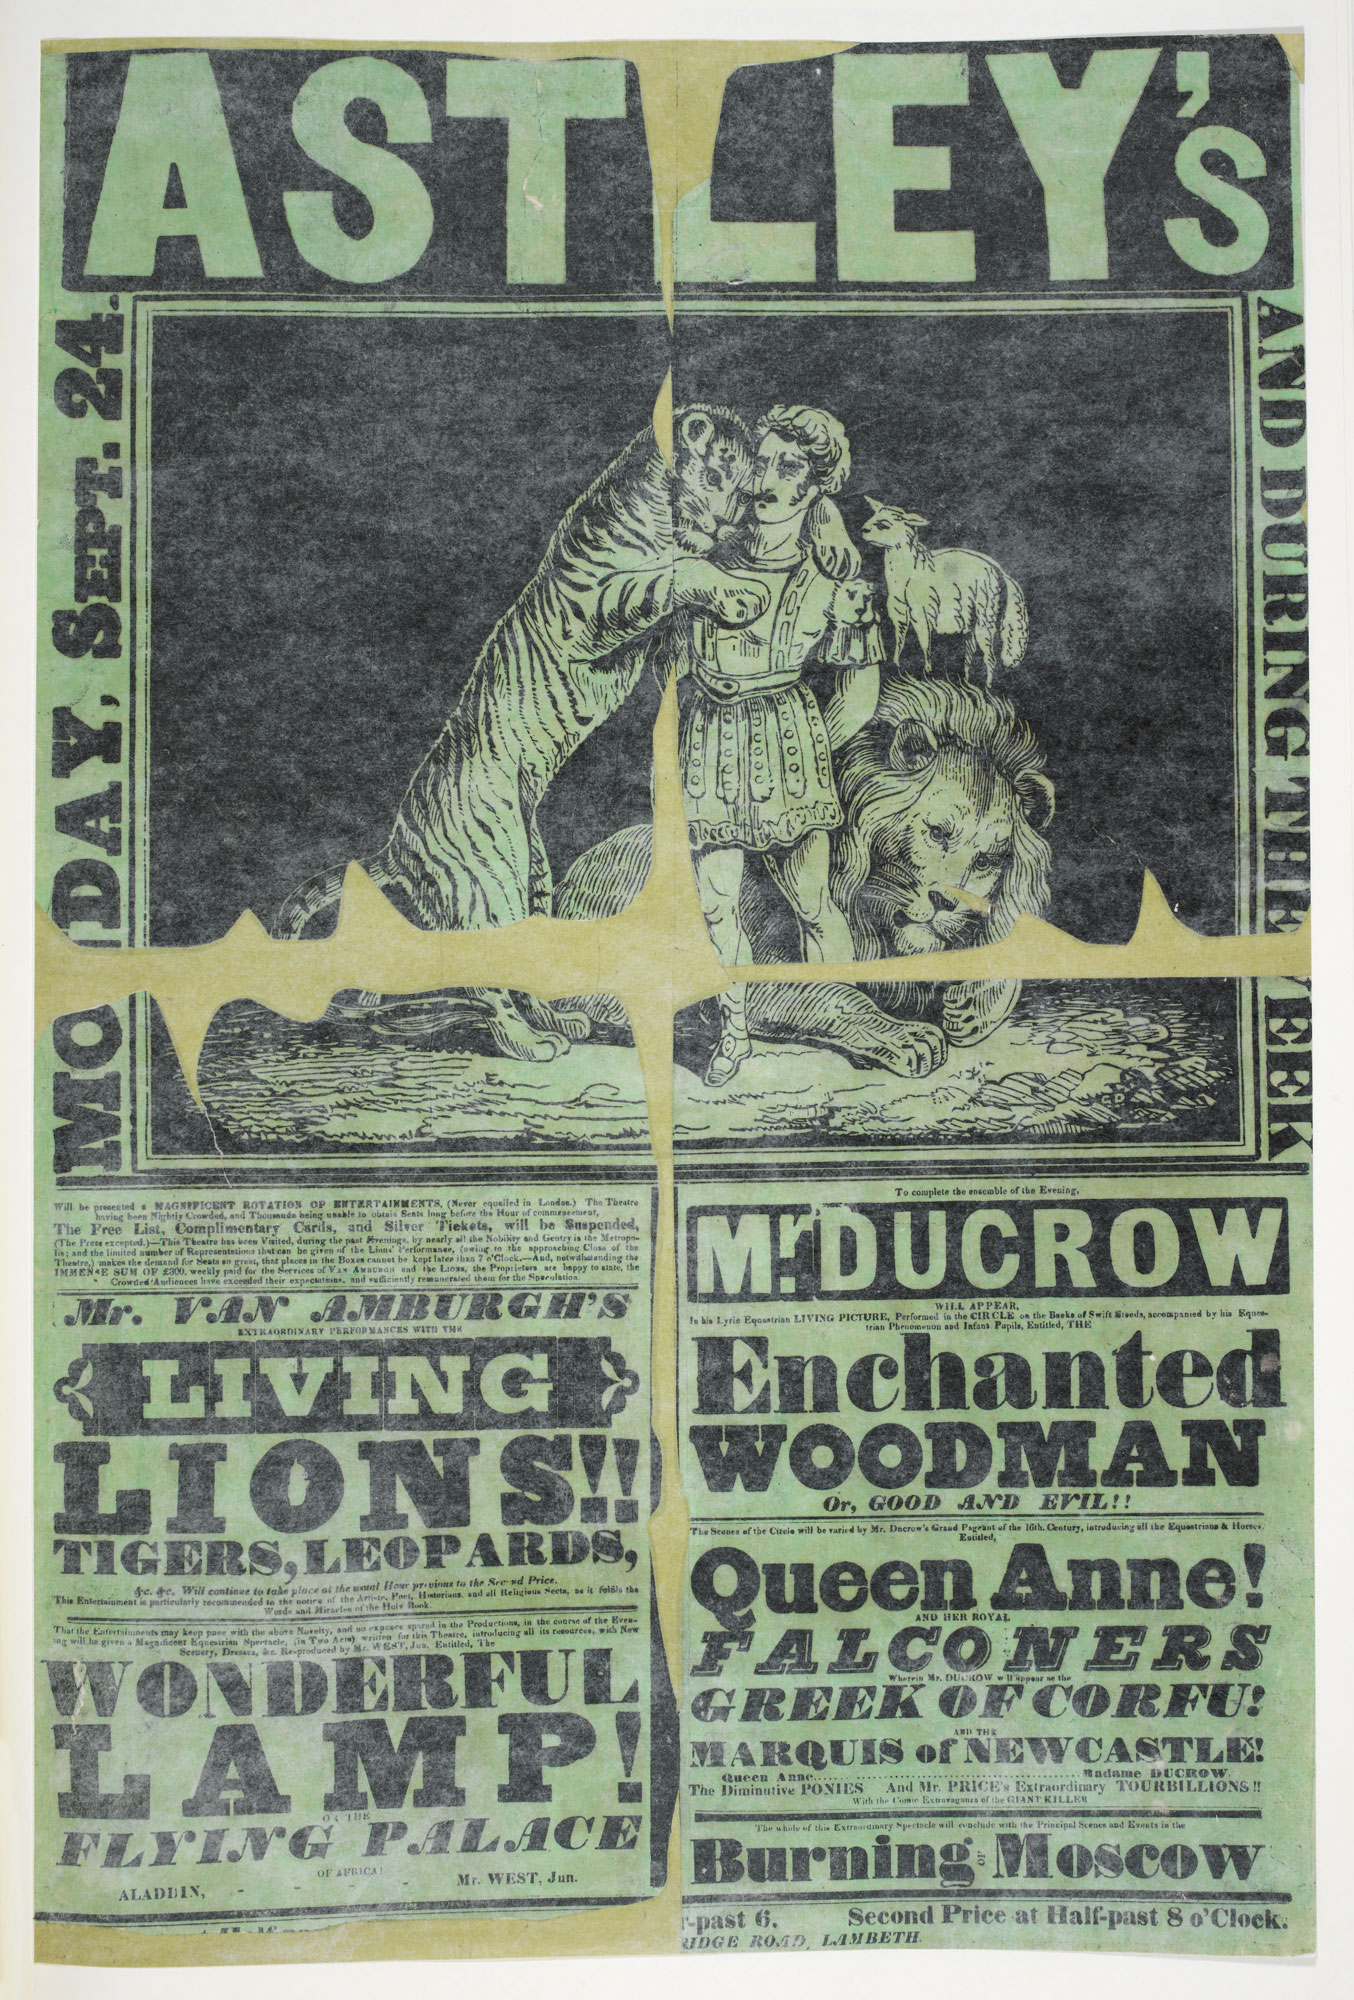 Circus poster: Astley's: Monday, Sept. 24 and during the week [page: single sheet]